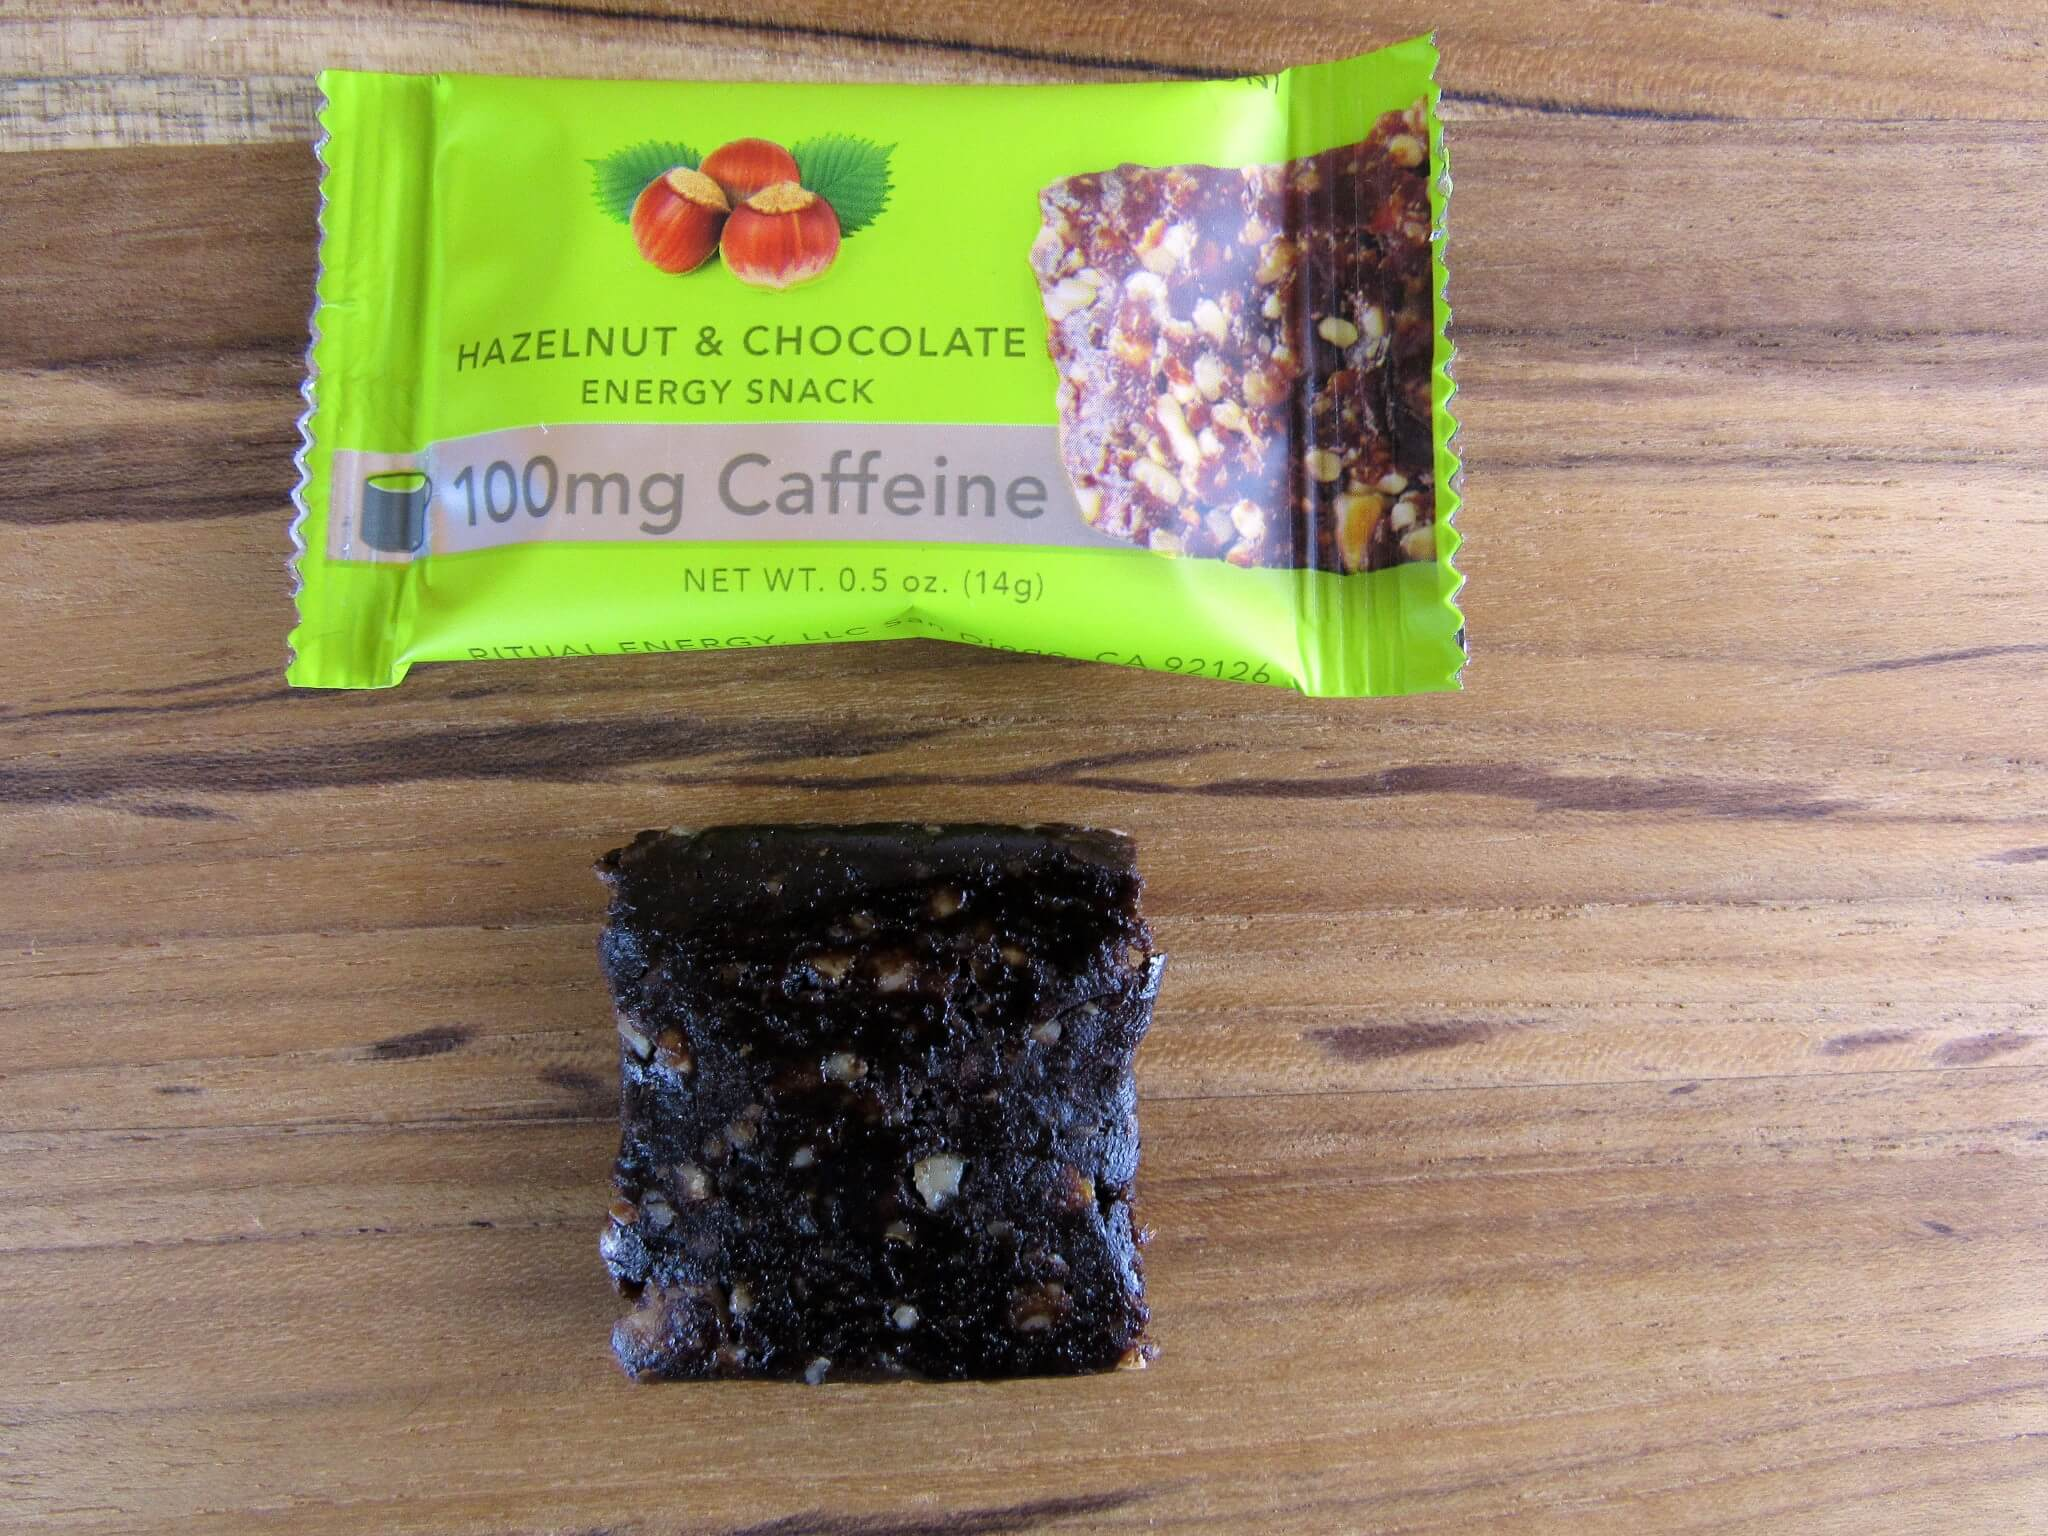 Hazelnut & Chocolate Energy Snack by Ritual Energy